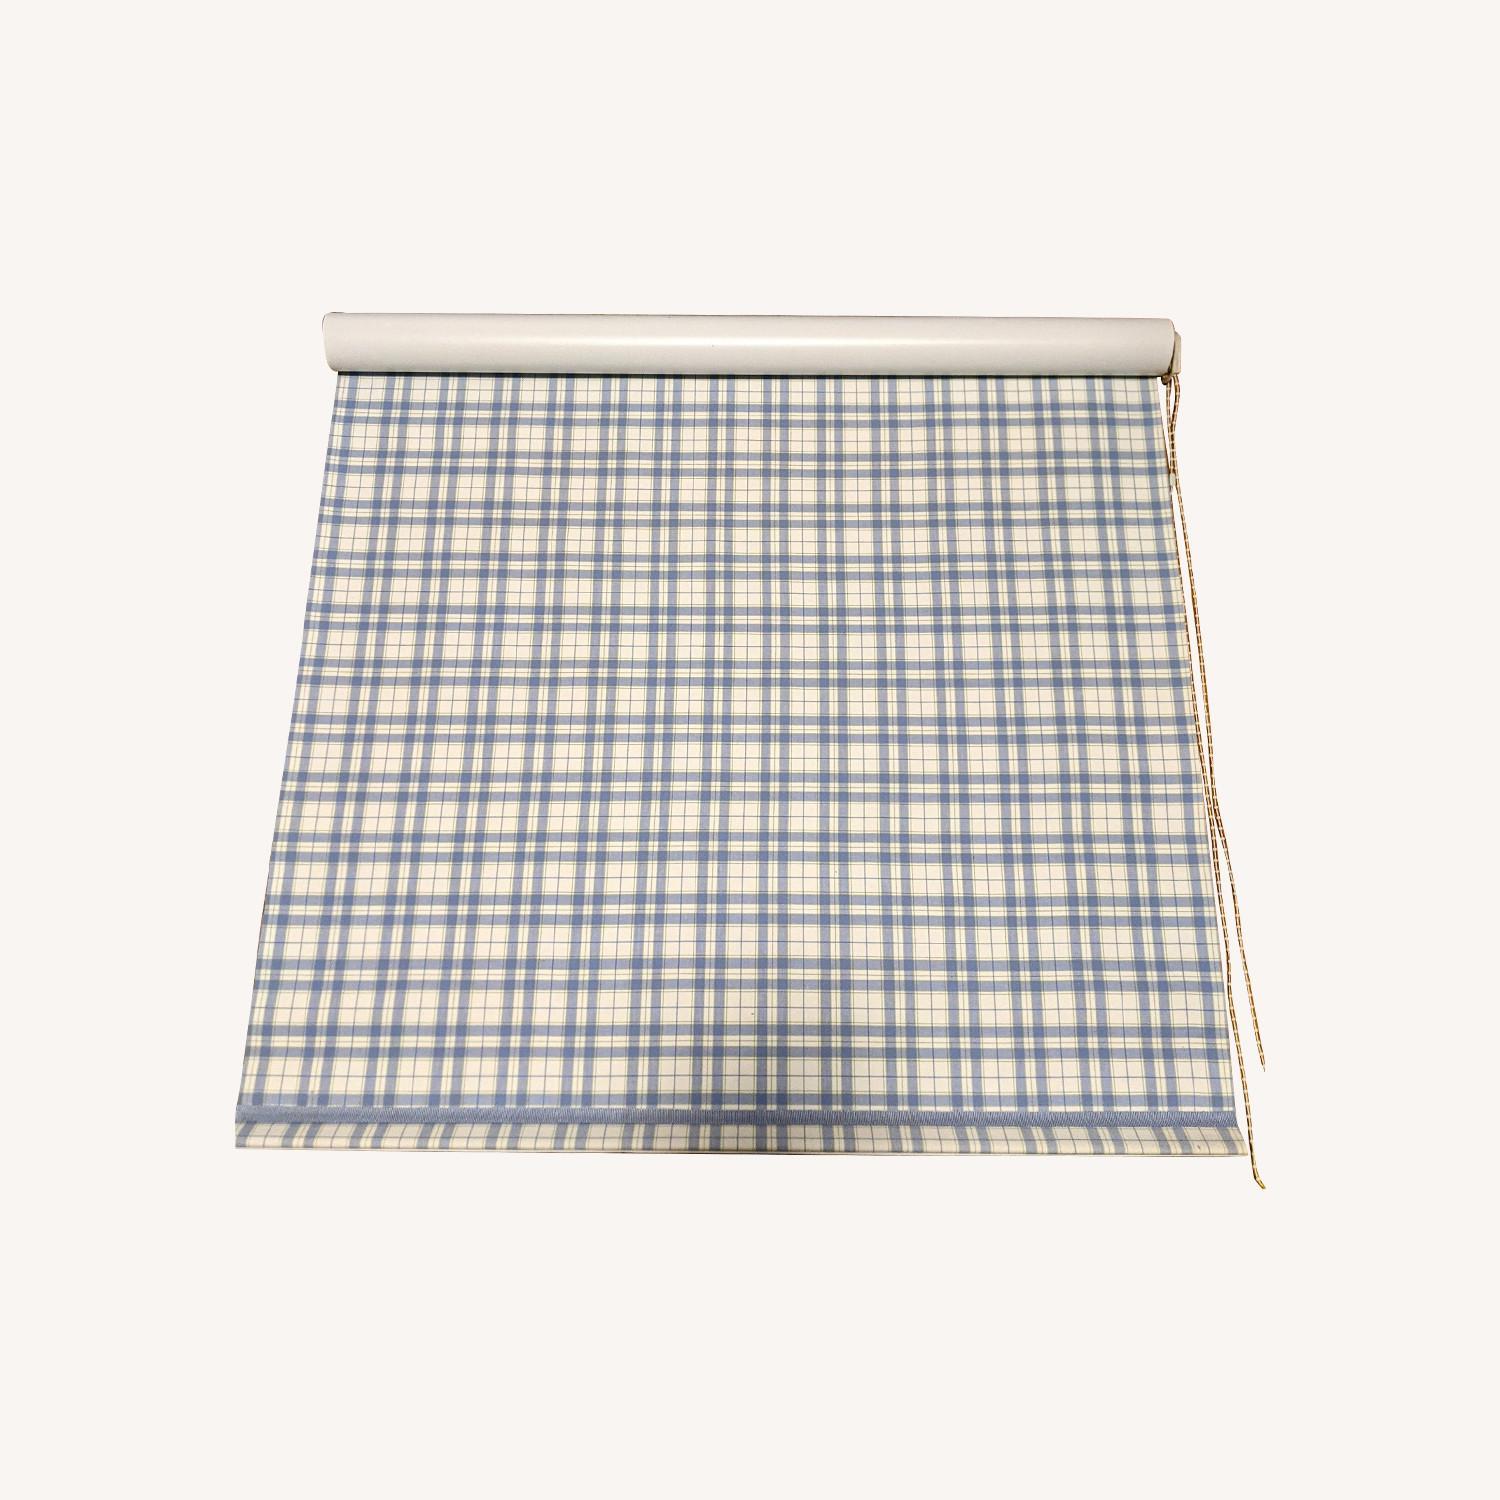 Fabric Roller Shades (3) - image-0